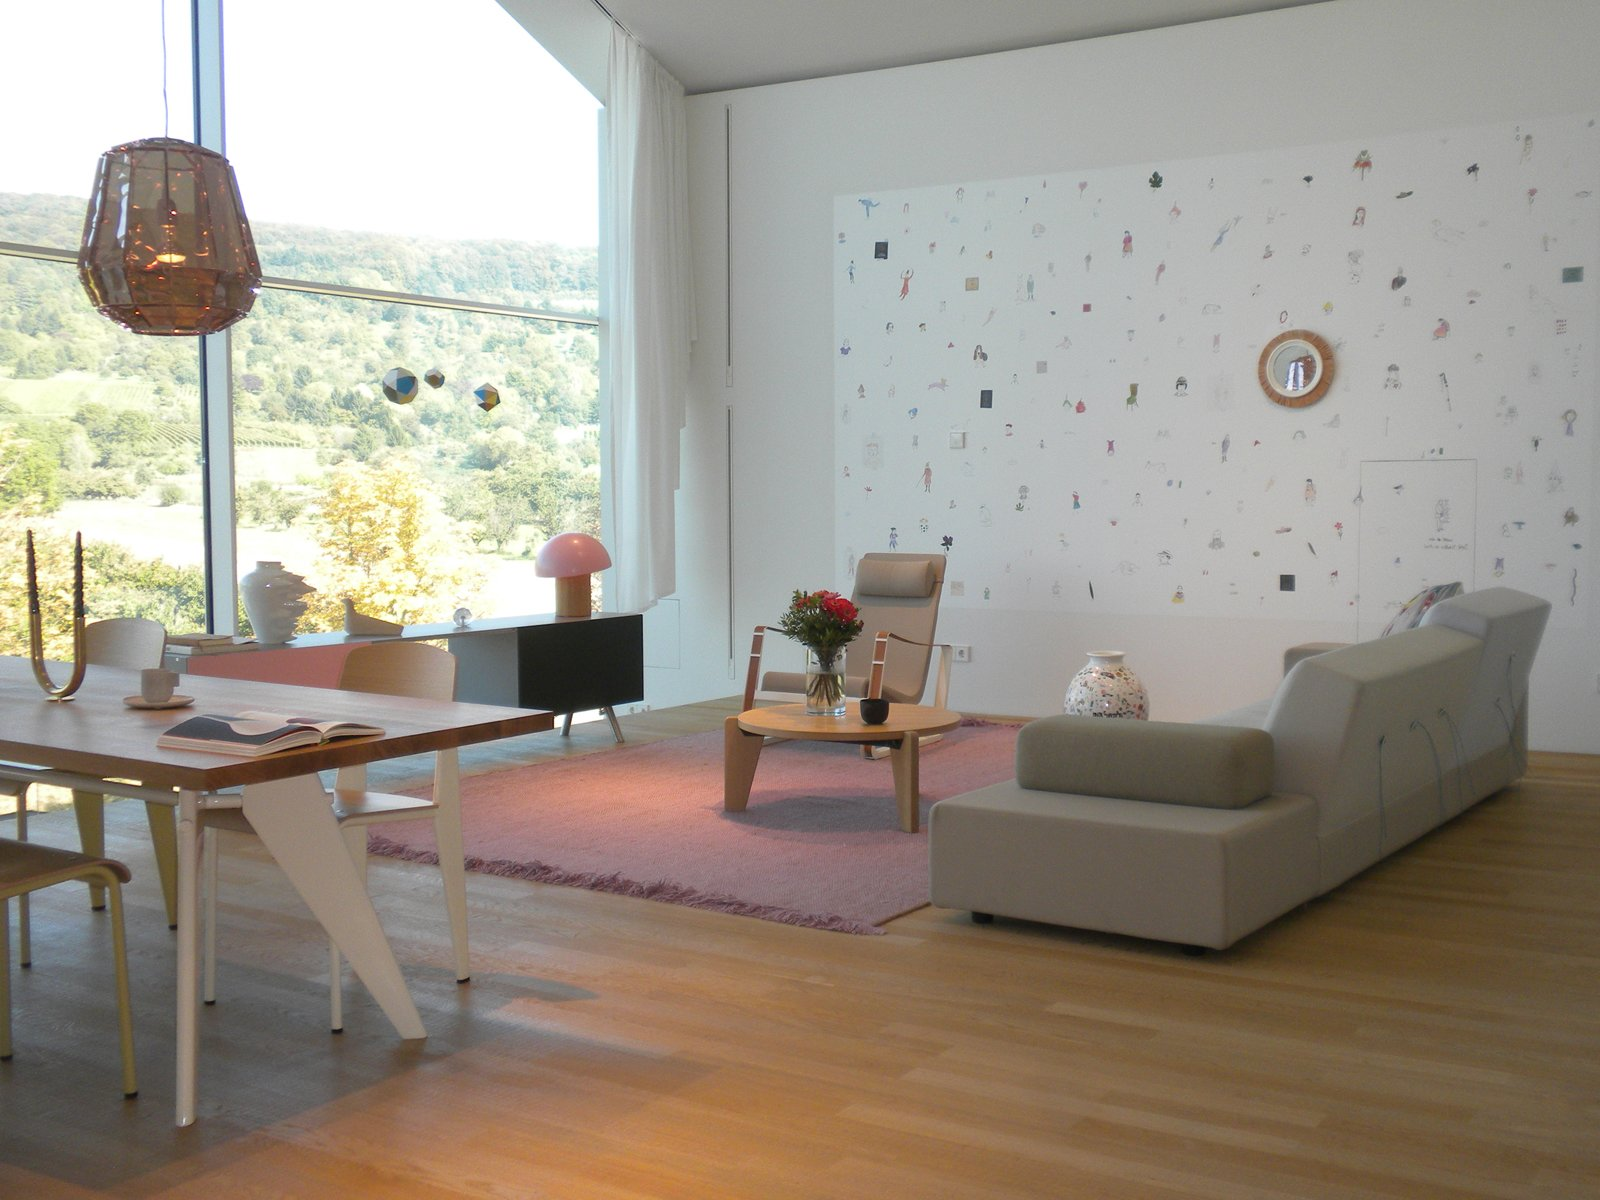 Serene settings like this one in the VitraHaus make you want to unpack and move in. This living and dining room features the Polder Sofa XL by Hella Jongerius, Kast console by Maarten Van Severen, Cité airchair by Jean Prouvé, Guéridon Bas coffee table by Prouvé, and Standard chairs around the EM Table by Prouvé. Inside the VitraHaus by Miyoko Ohtake